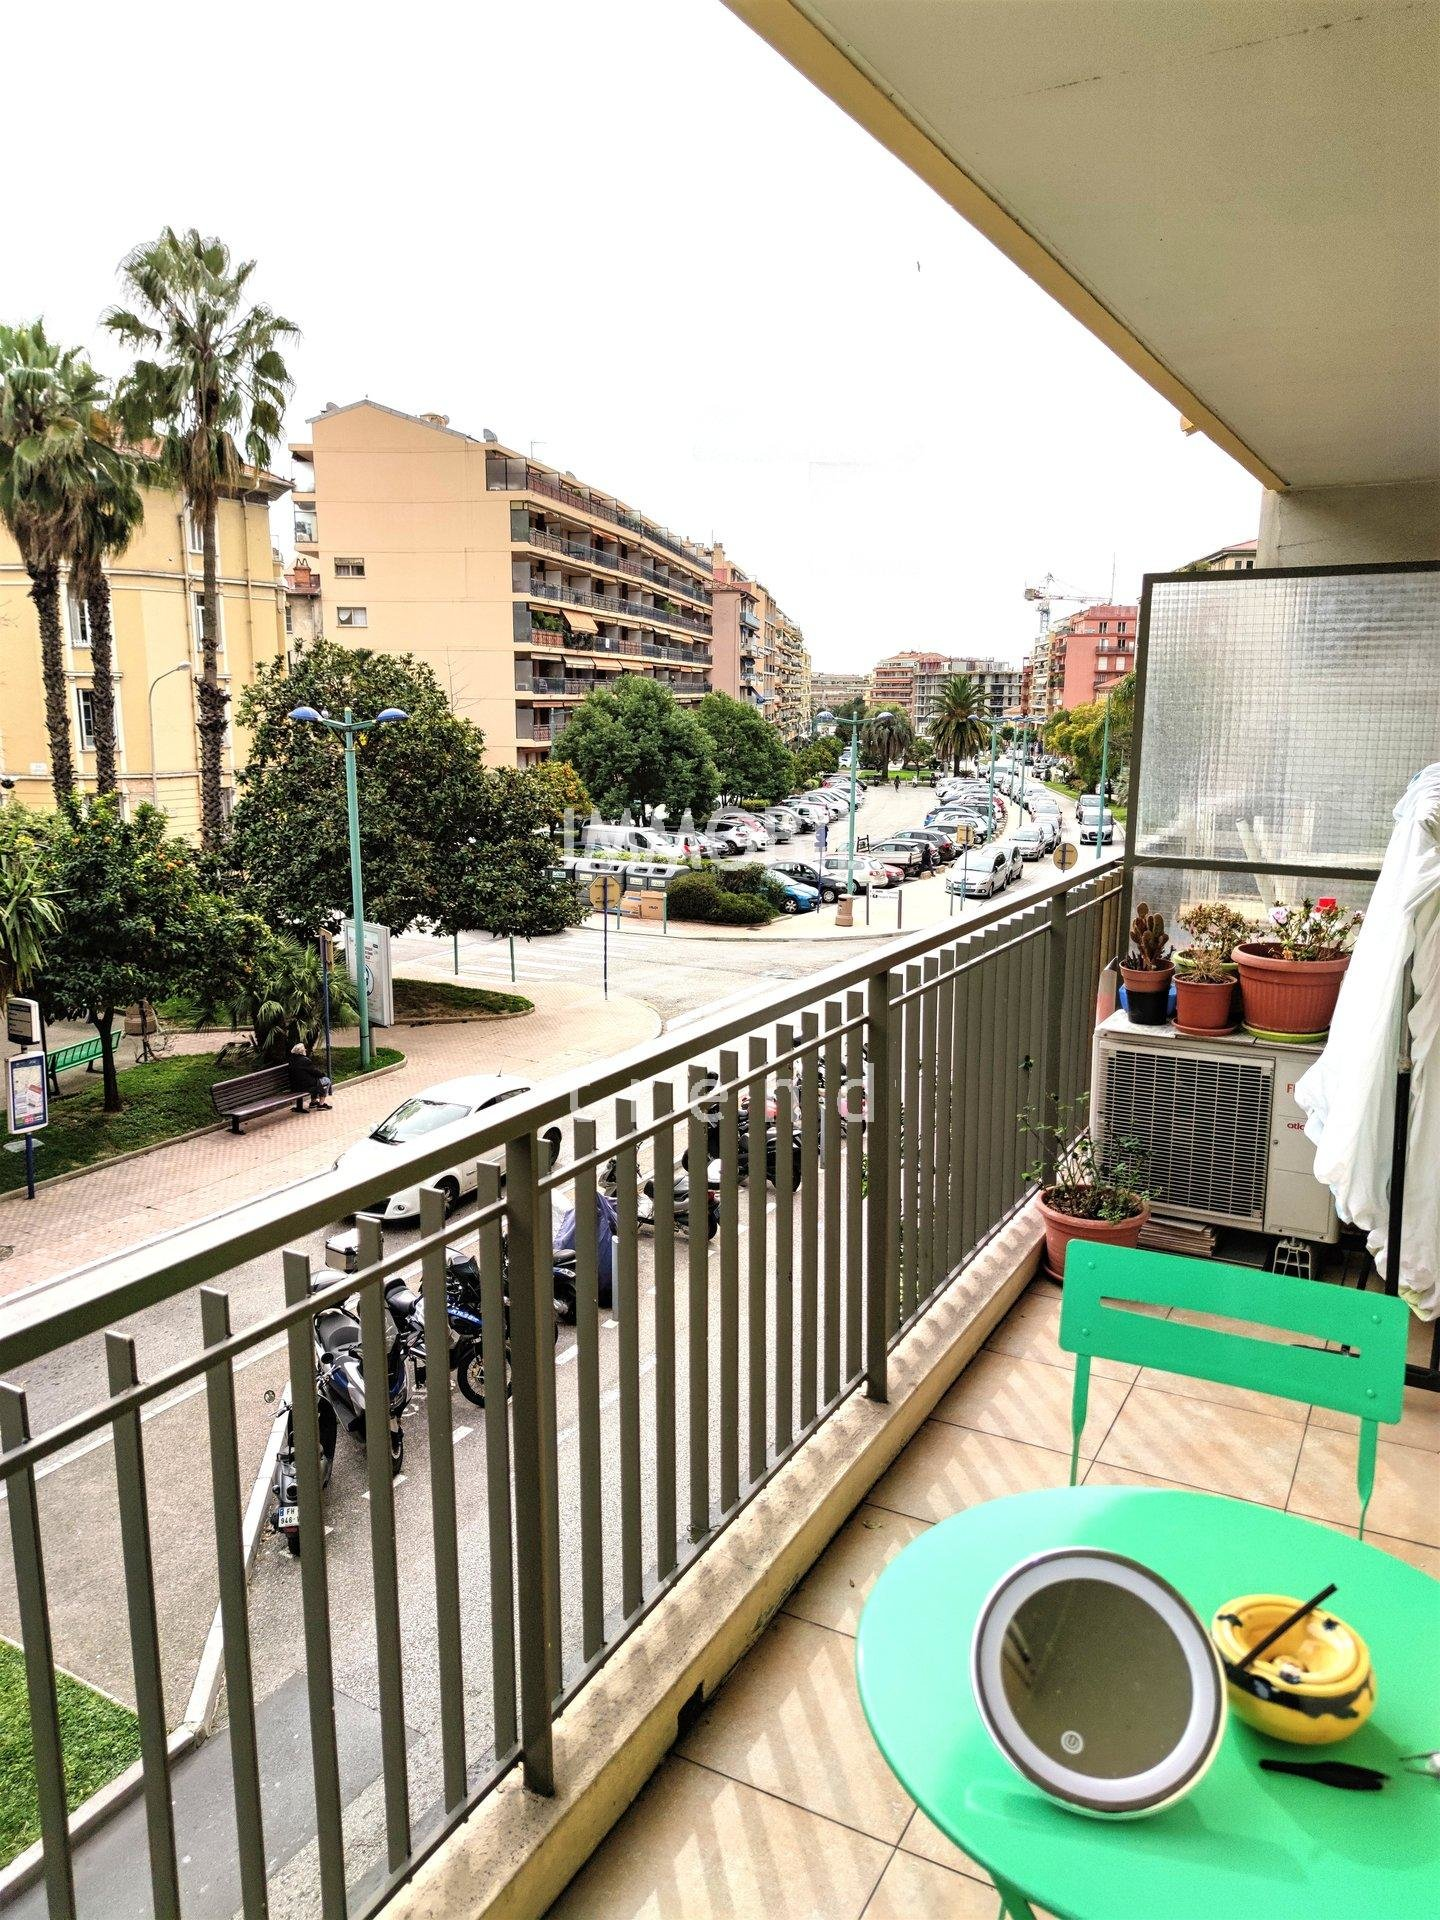 For sale, Spacious One room apartment Menton with terrace